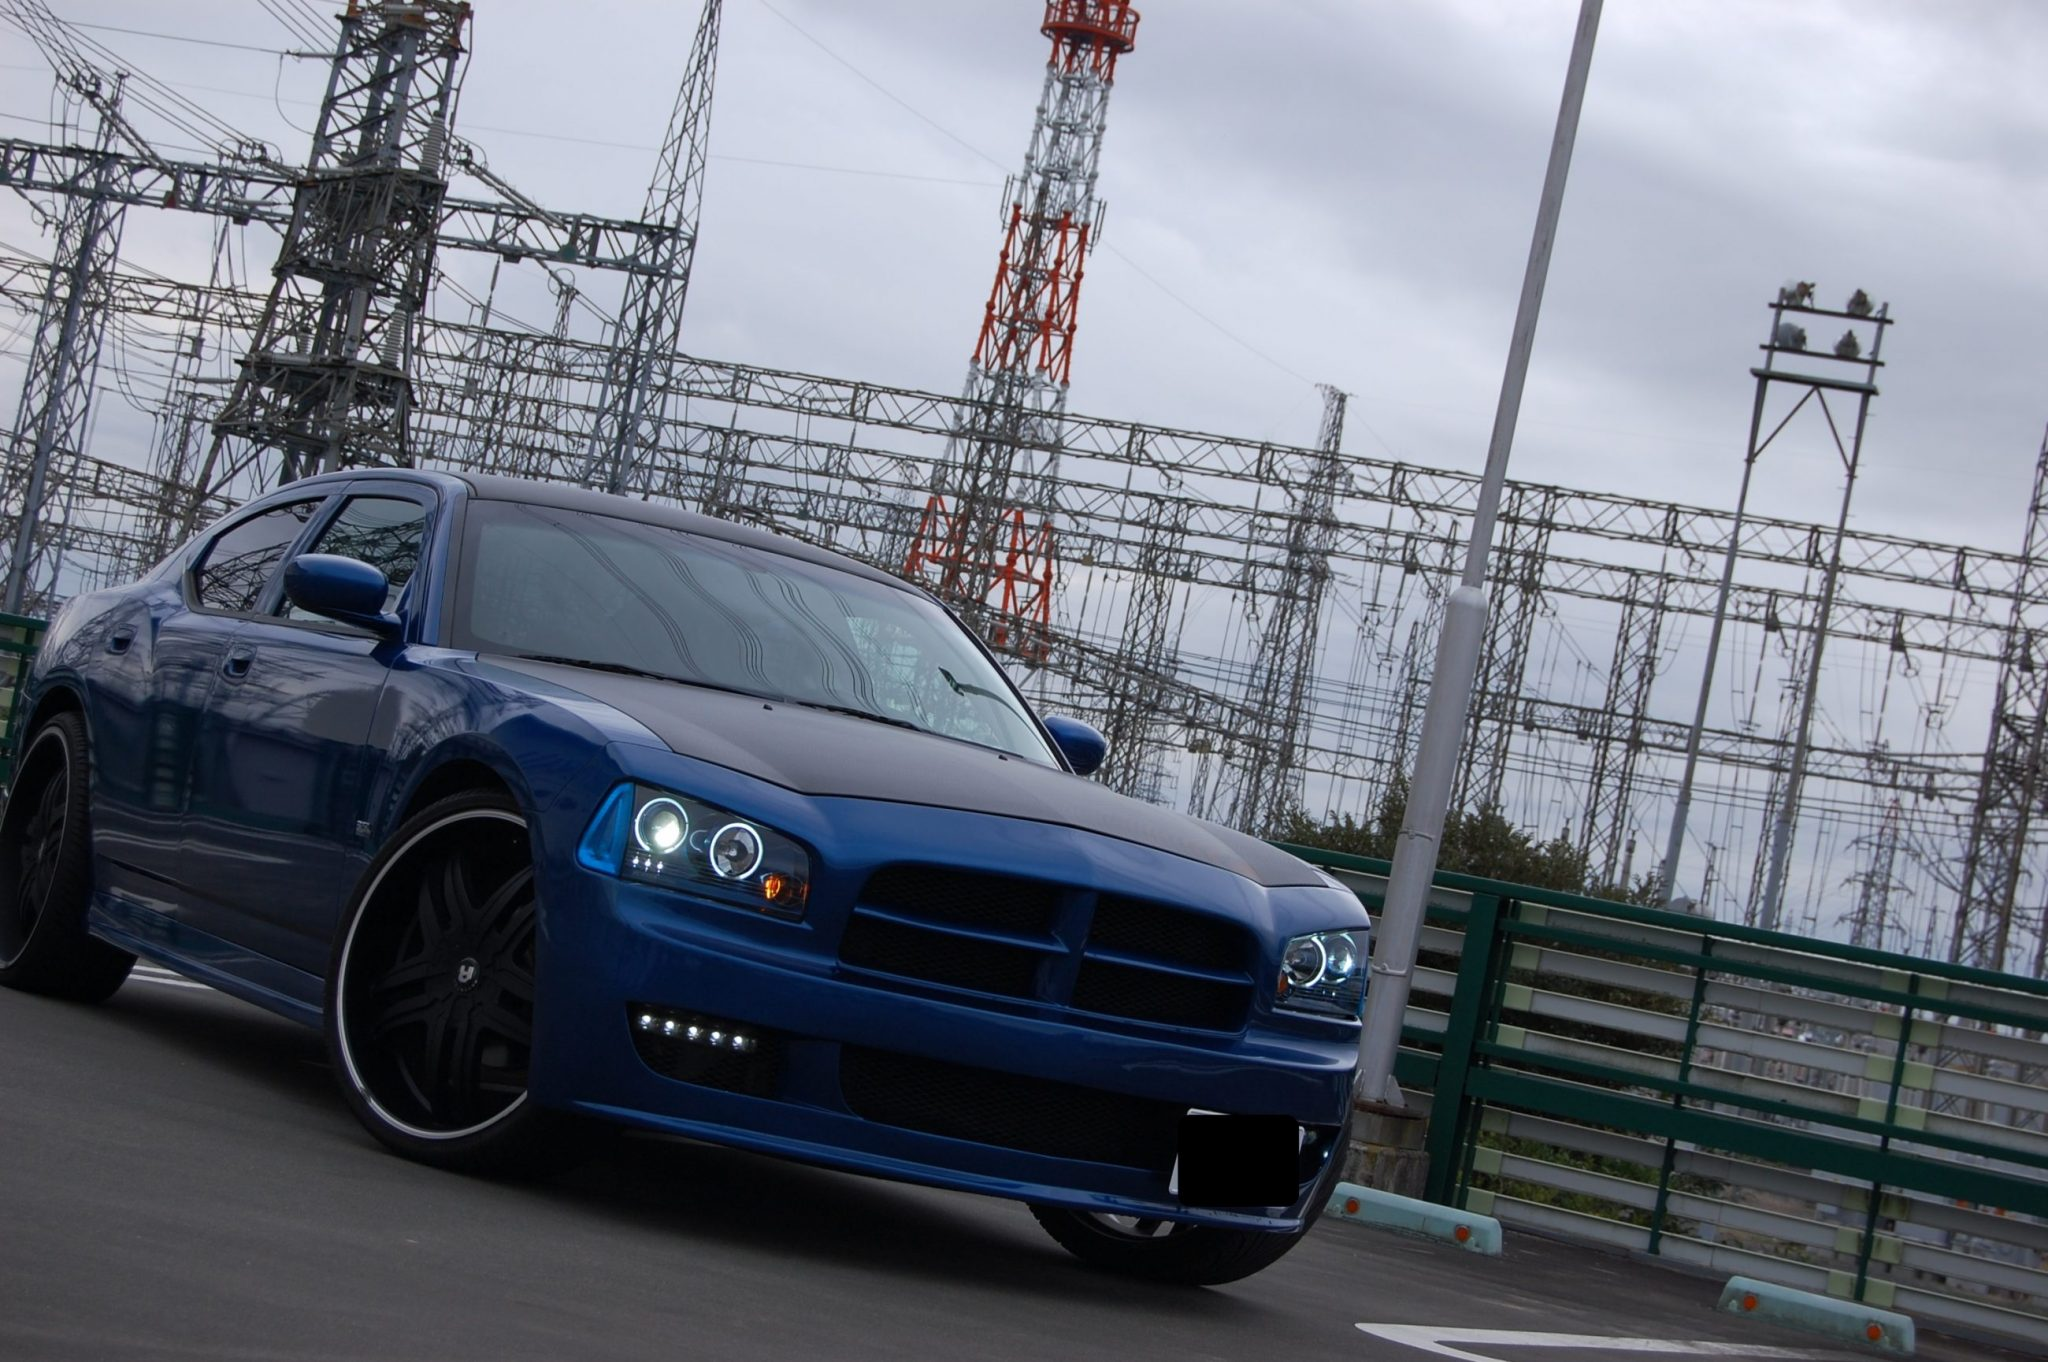 DODGE CHAGER